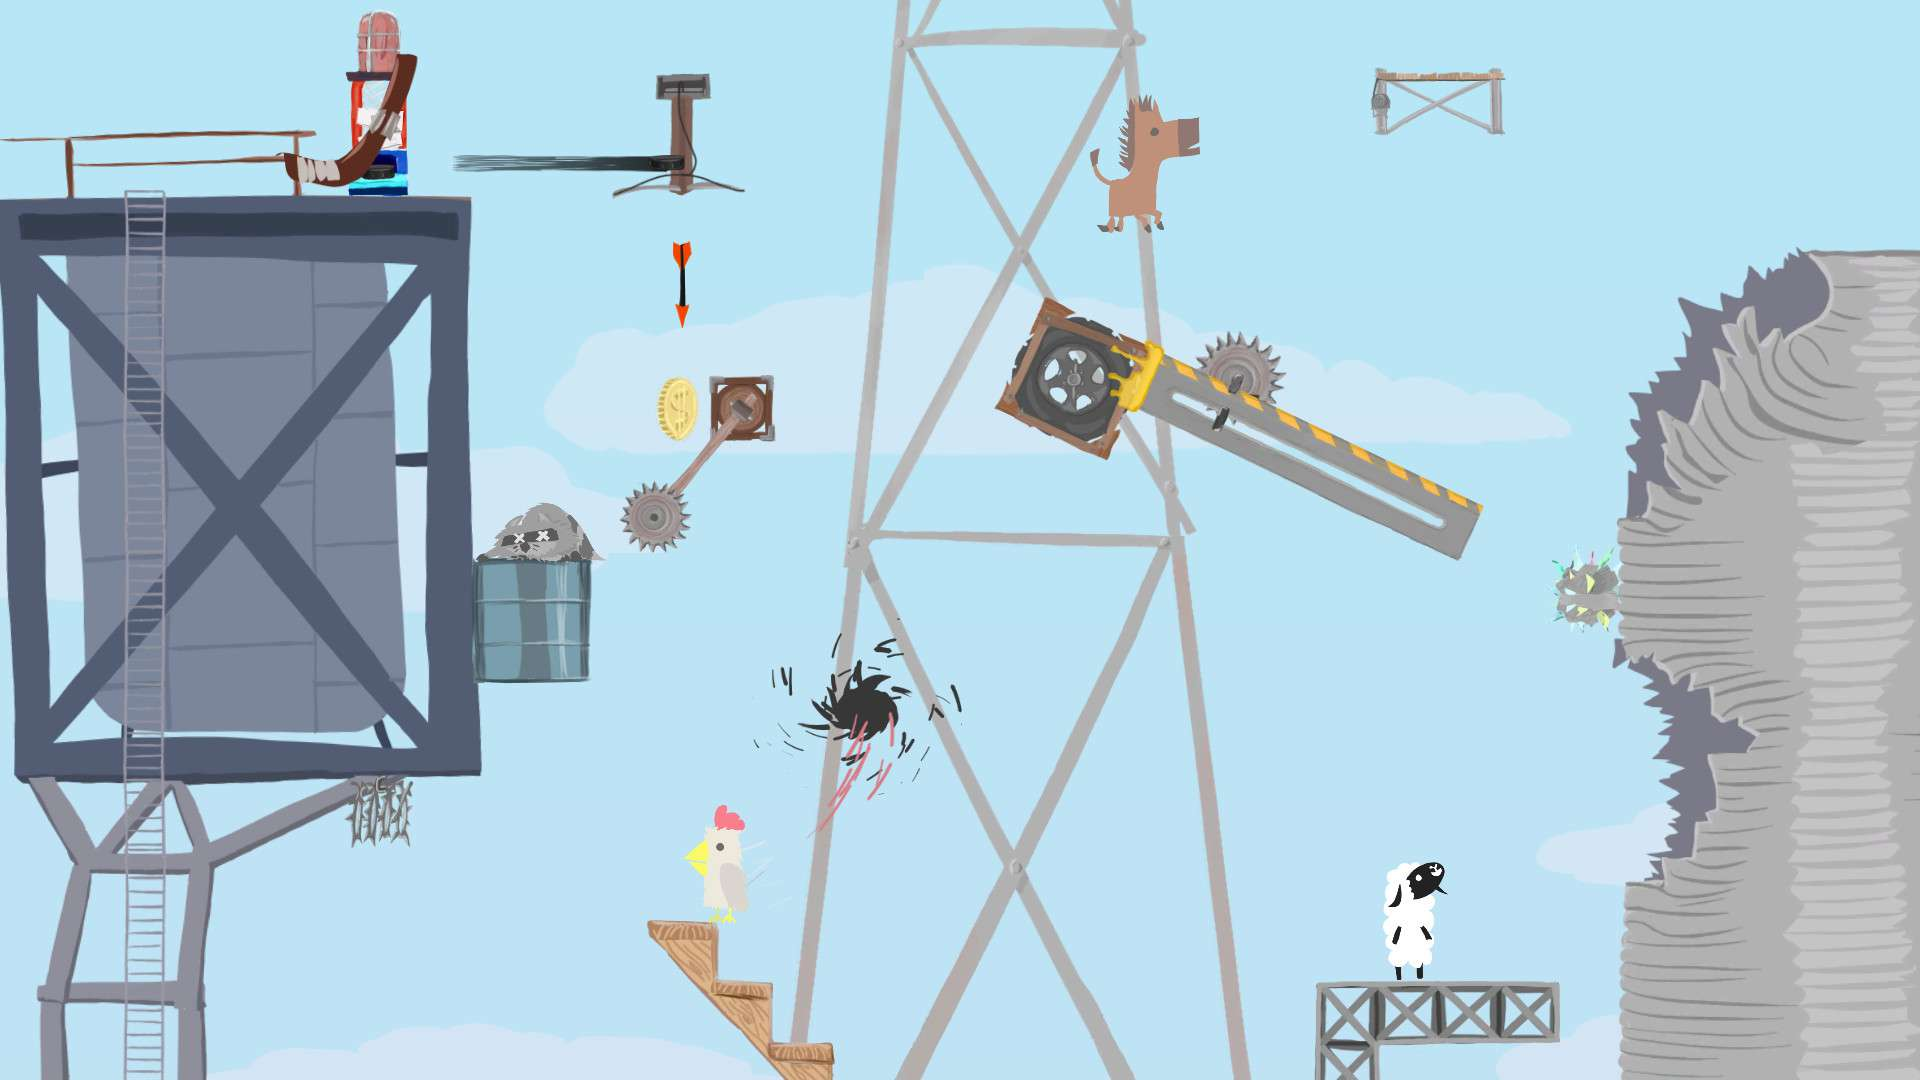 Ultimate Chicken Horse #2